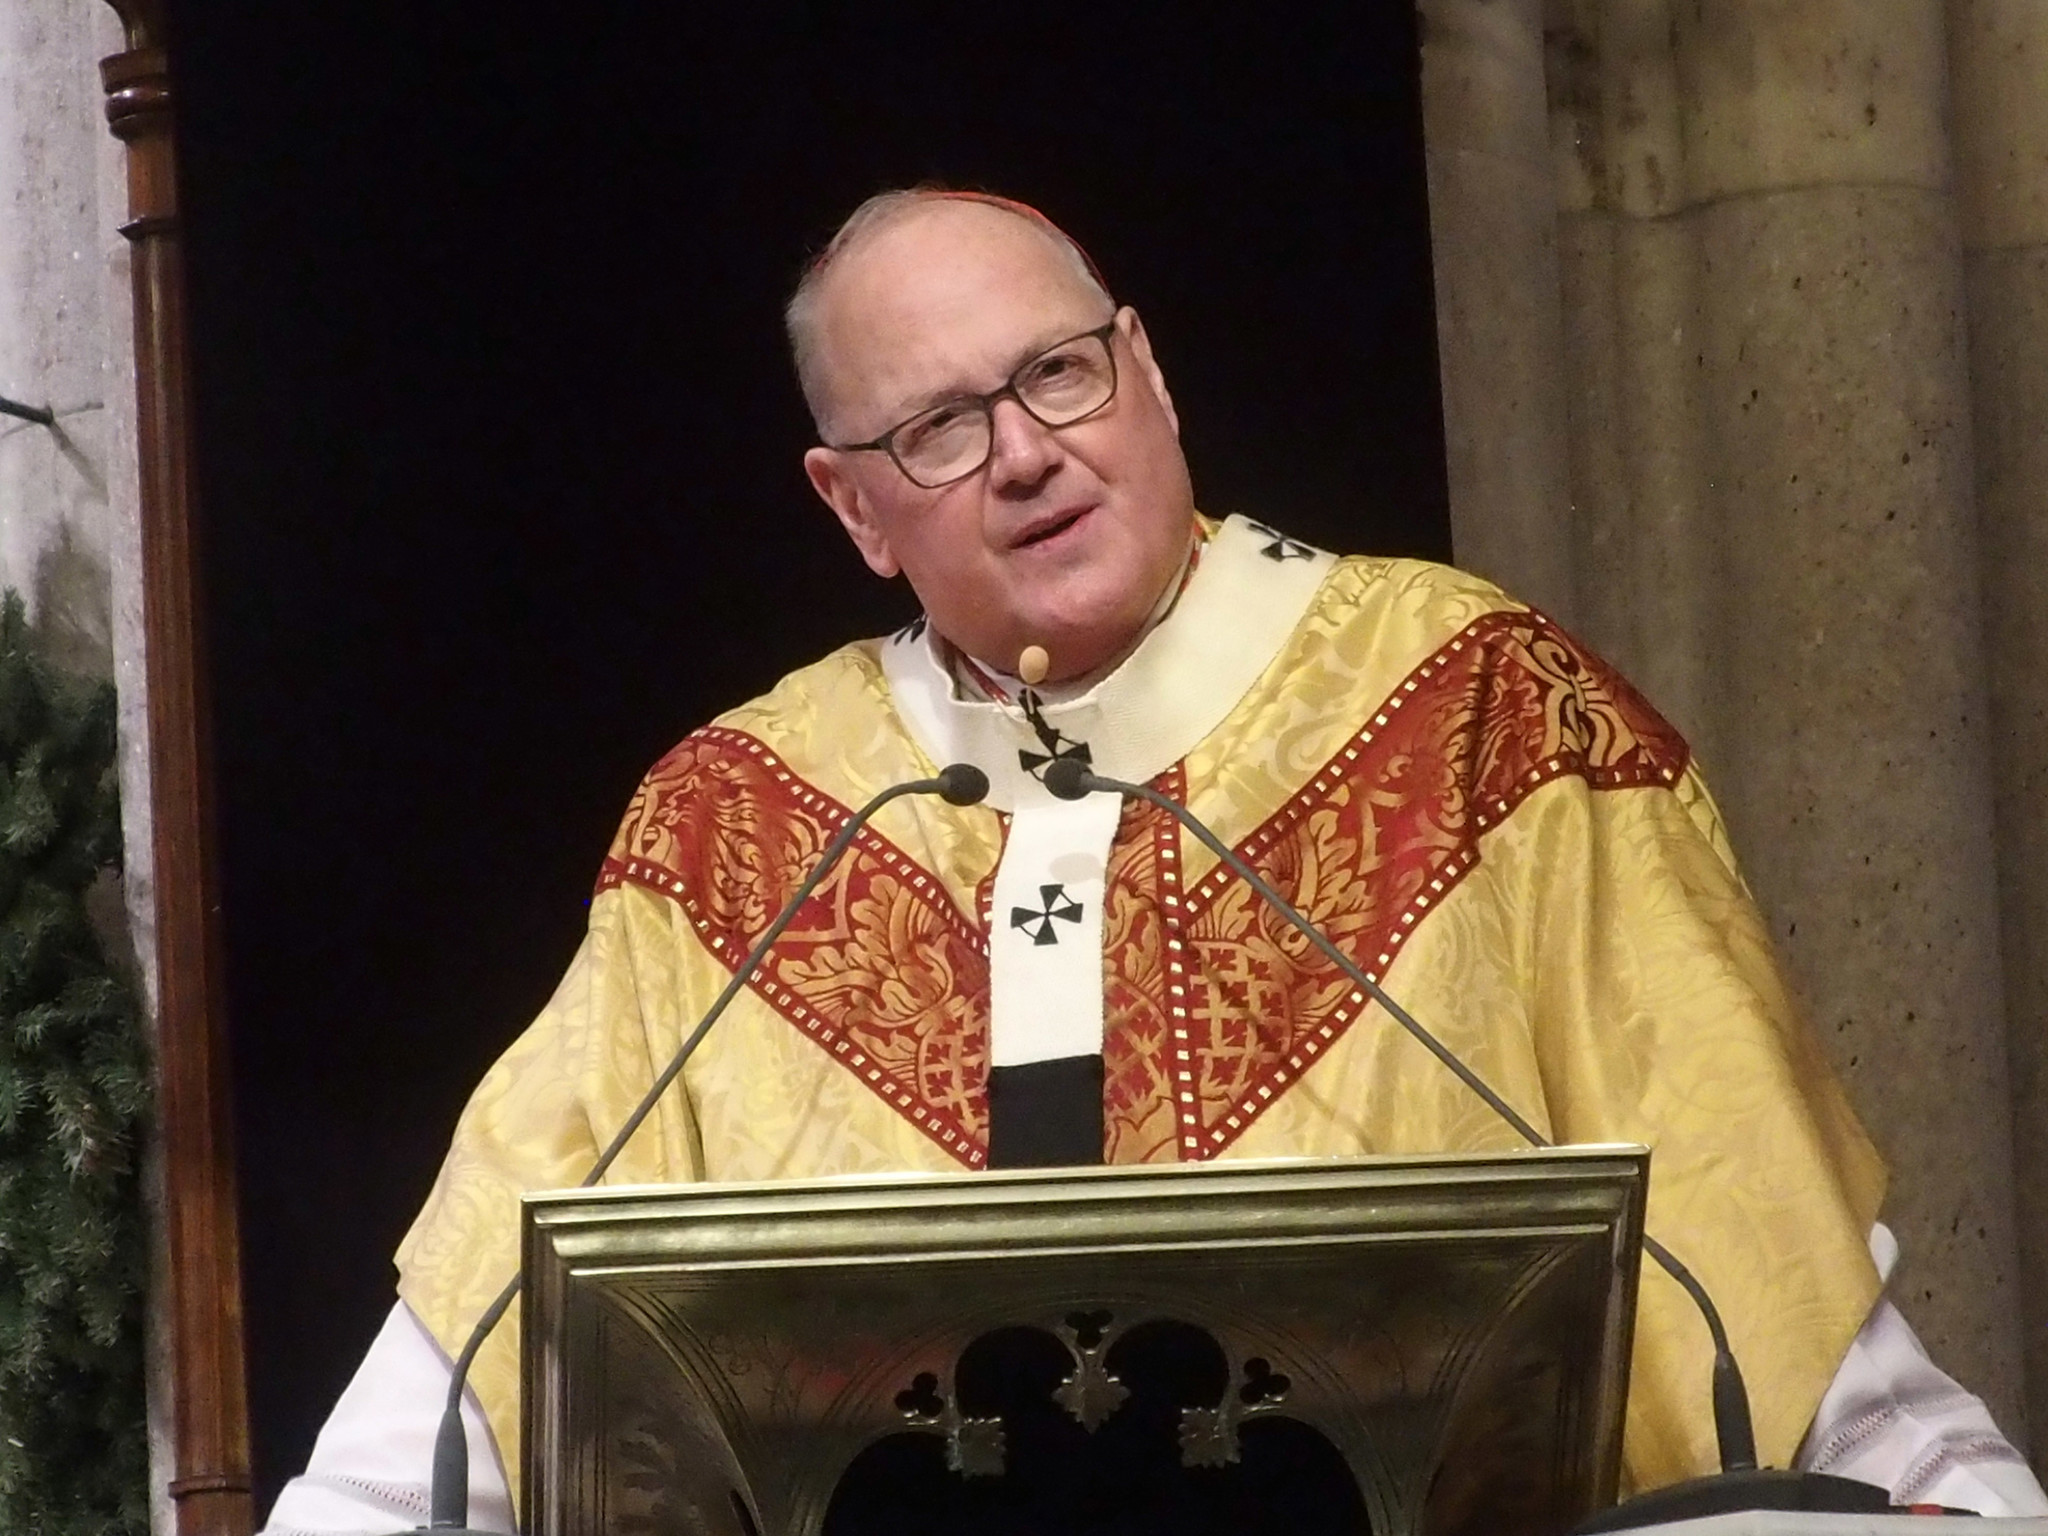 Catholic church services canceled by New York archdiocese over coronavirus